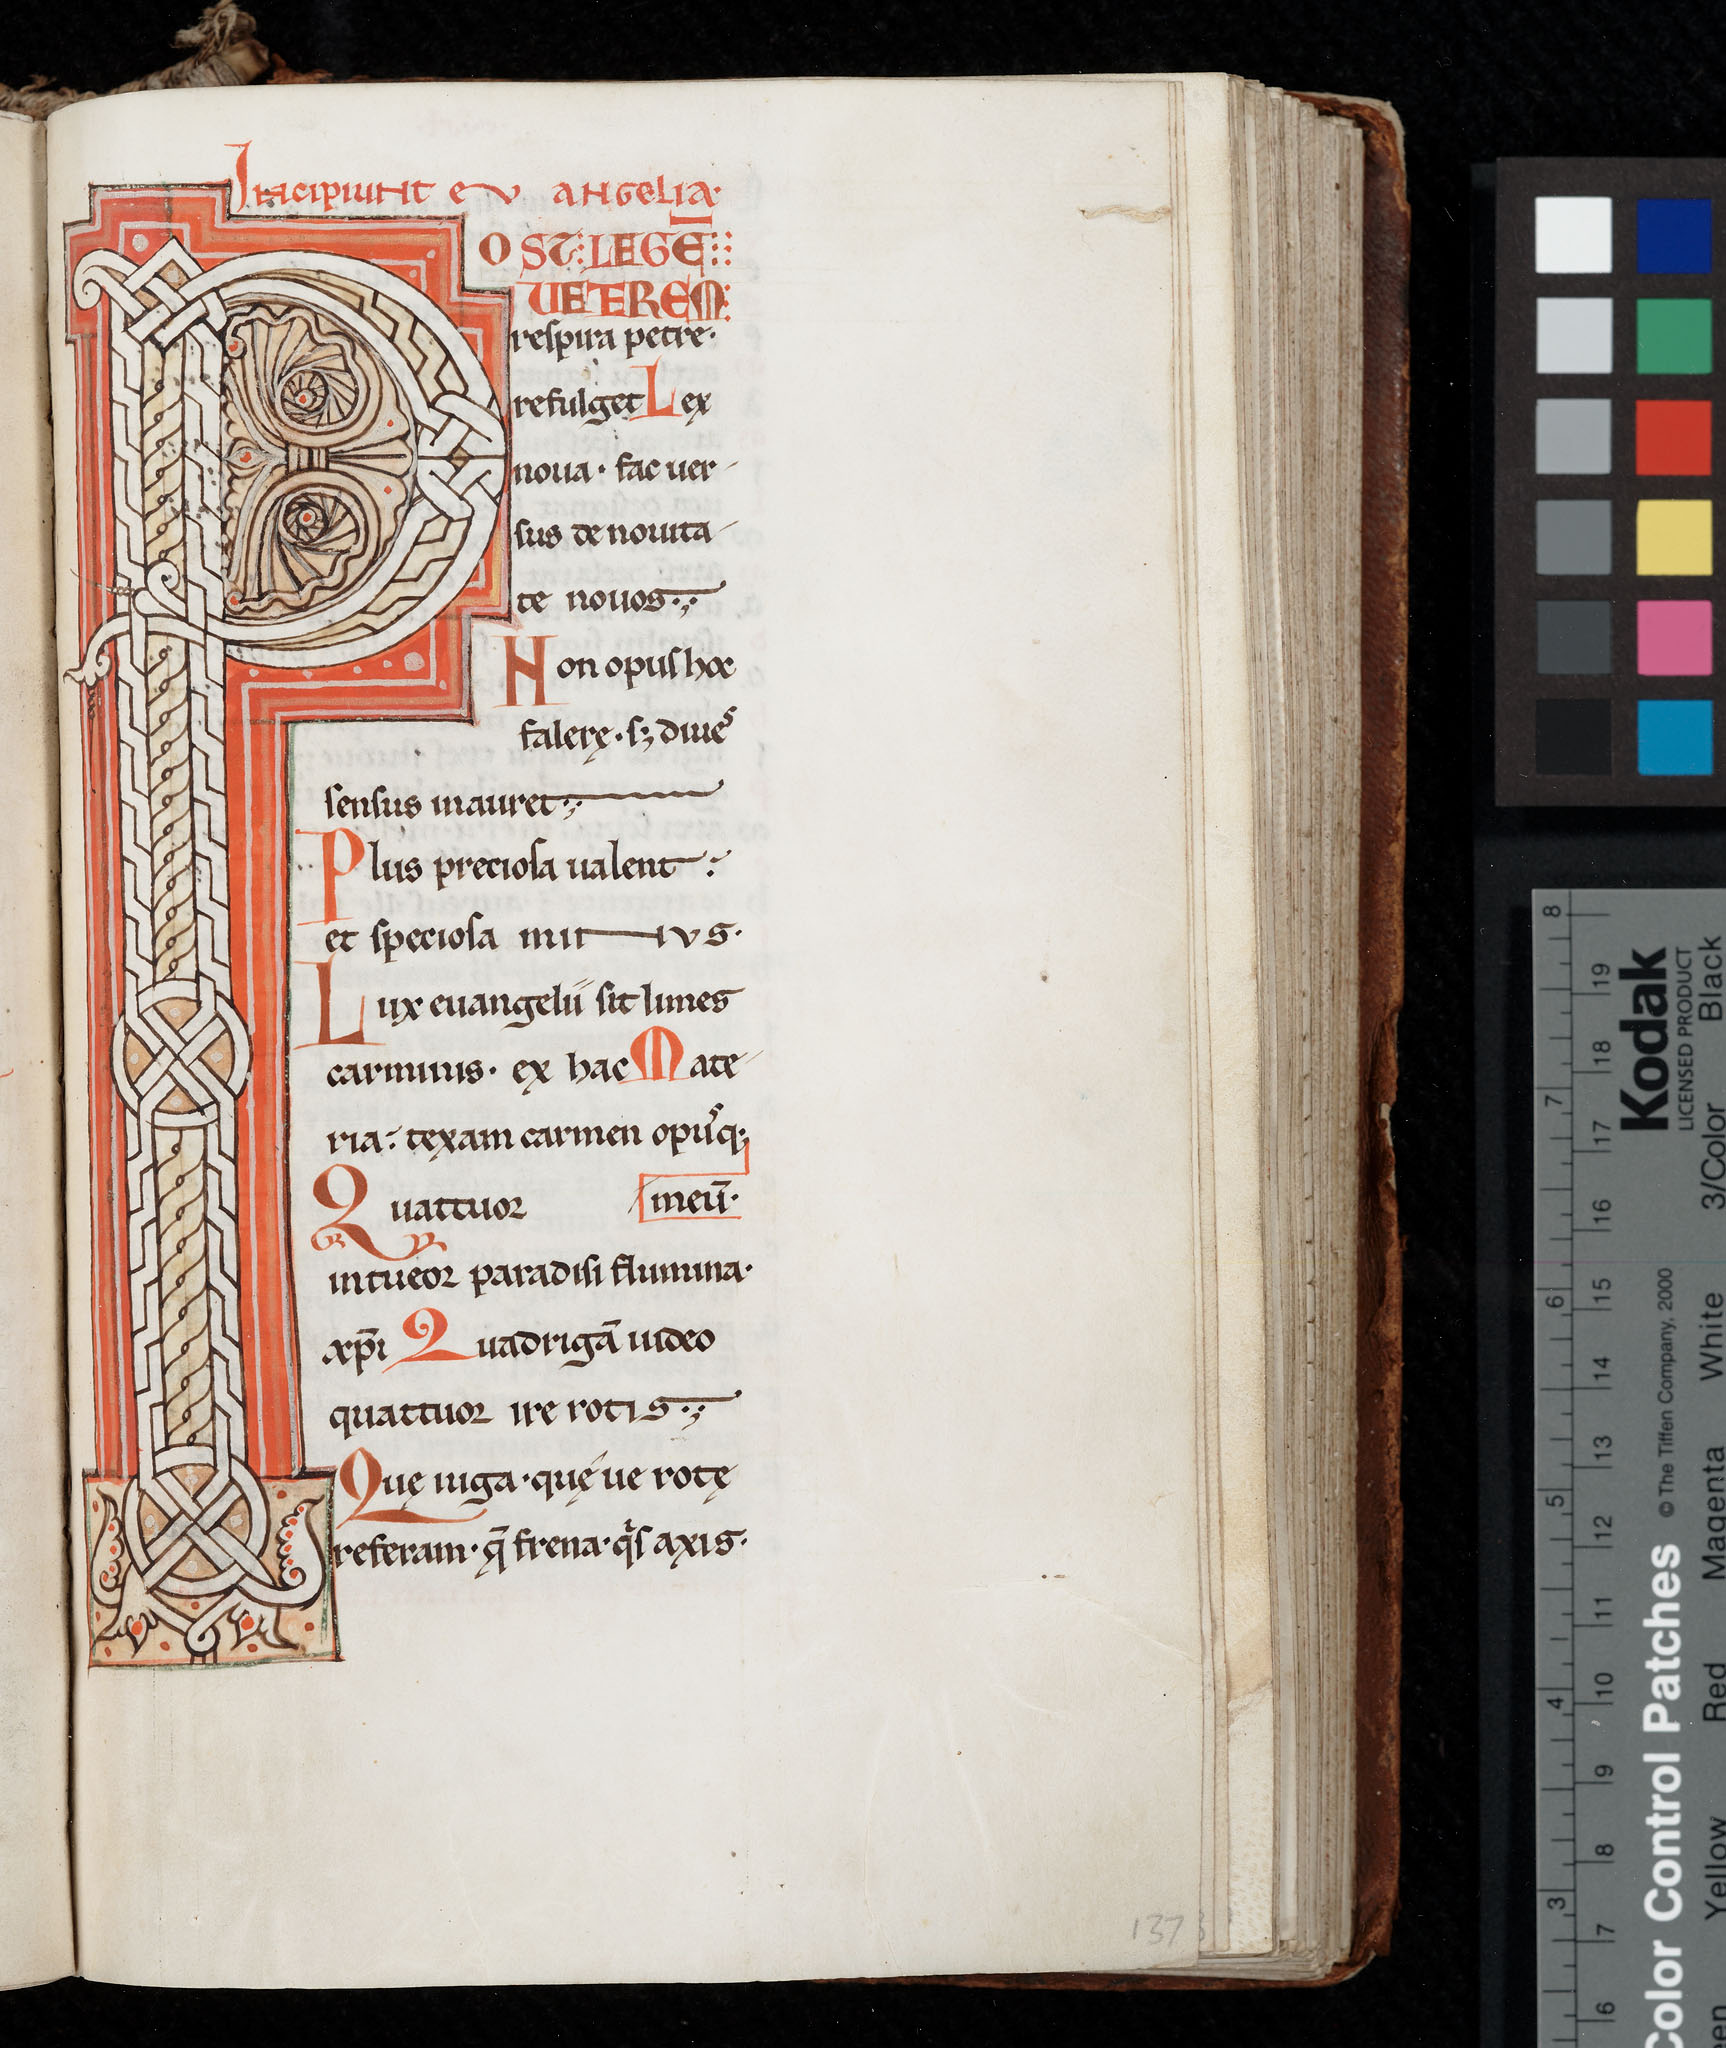 Lawrence, University of Kansas, Spencer Research Library, Spec. Coll., MS C195, f. 137r